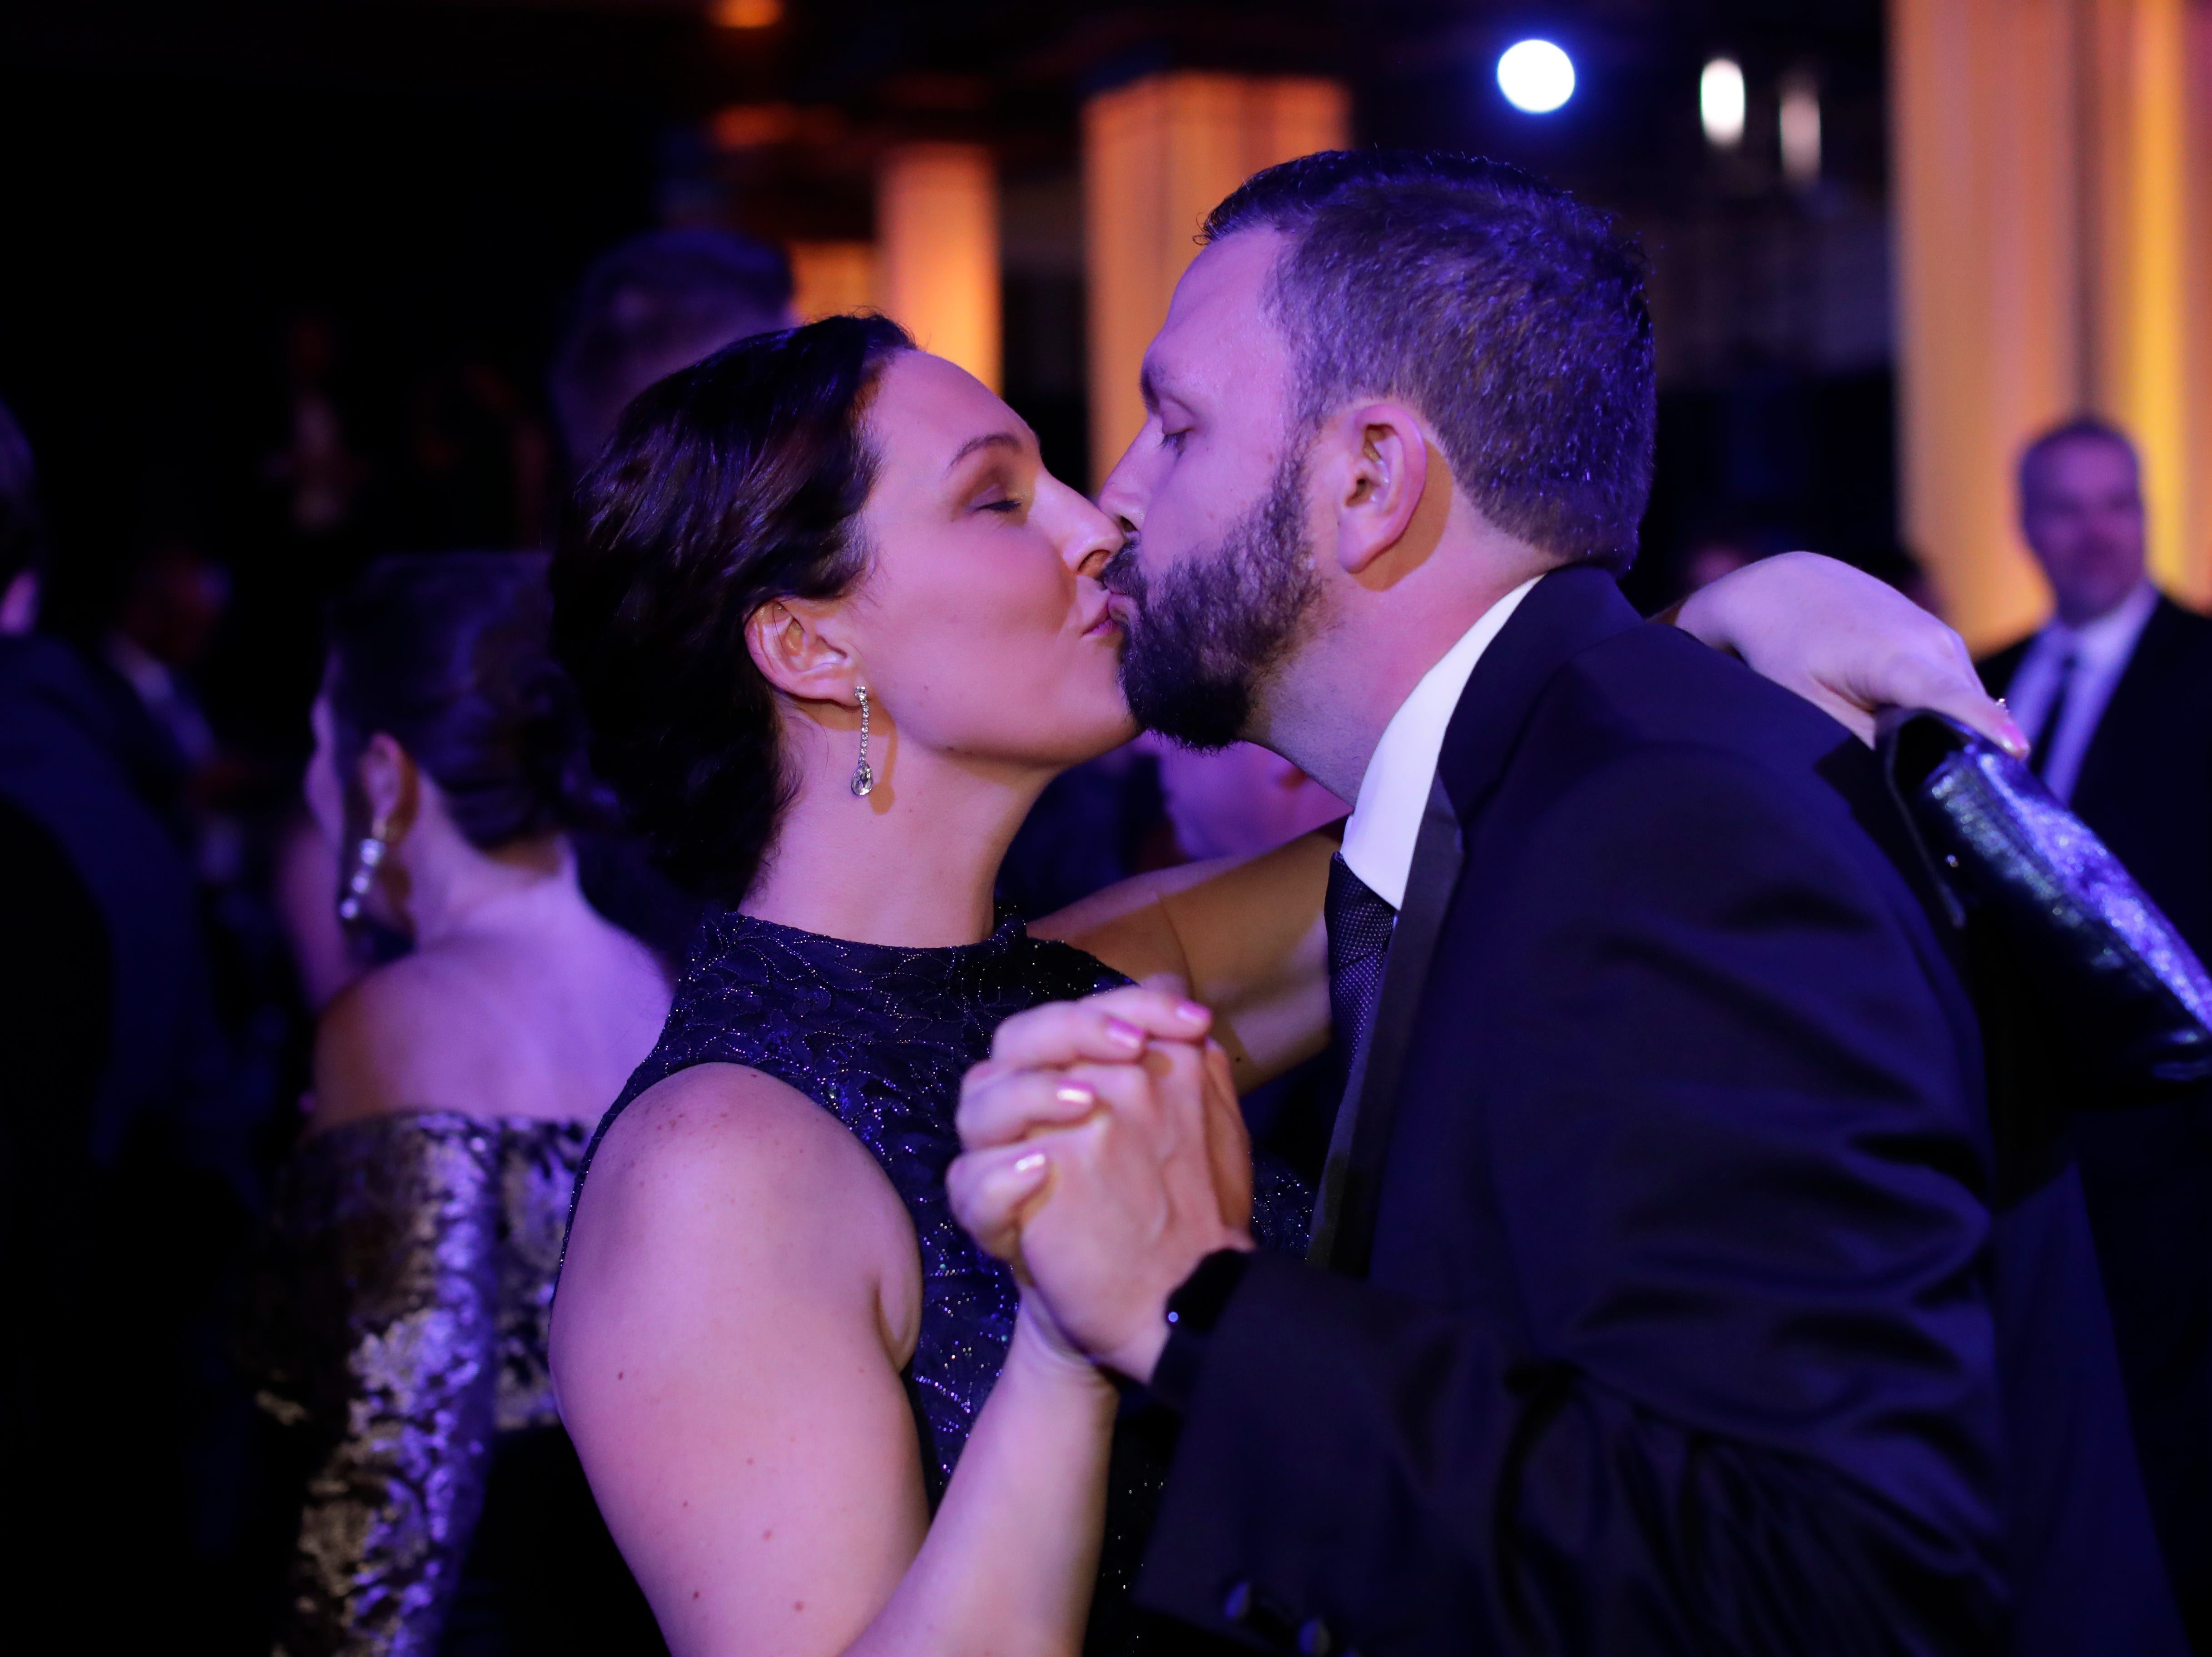 Hundreds of guests from all over Florida attend Florida's 46th Governor's Inaugural Ball at the Tucker Civic Center, Tuesday, Jan. 8, 2019.  Guests kiss as they dance the night away while live music is performed.